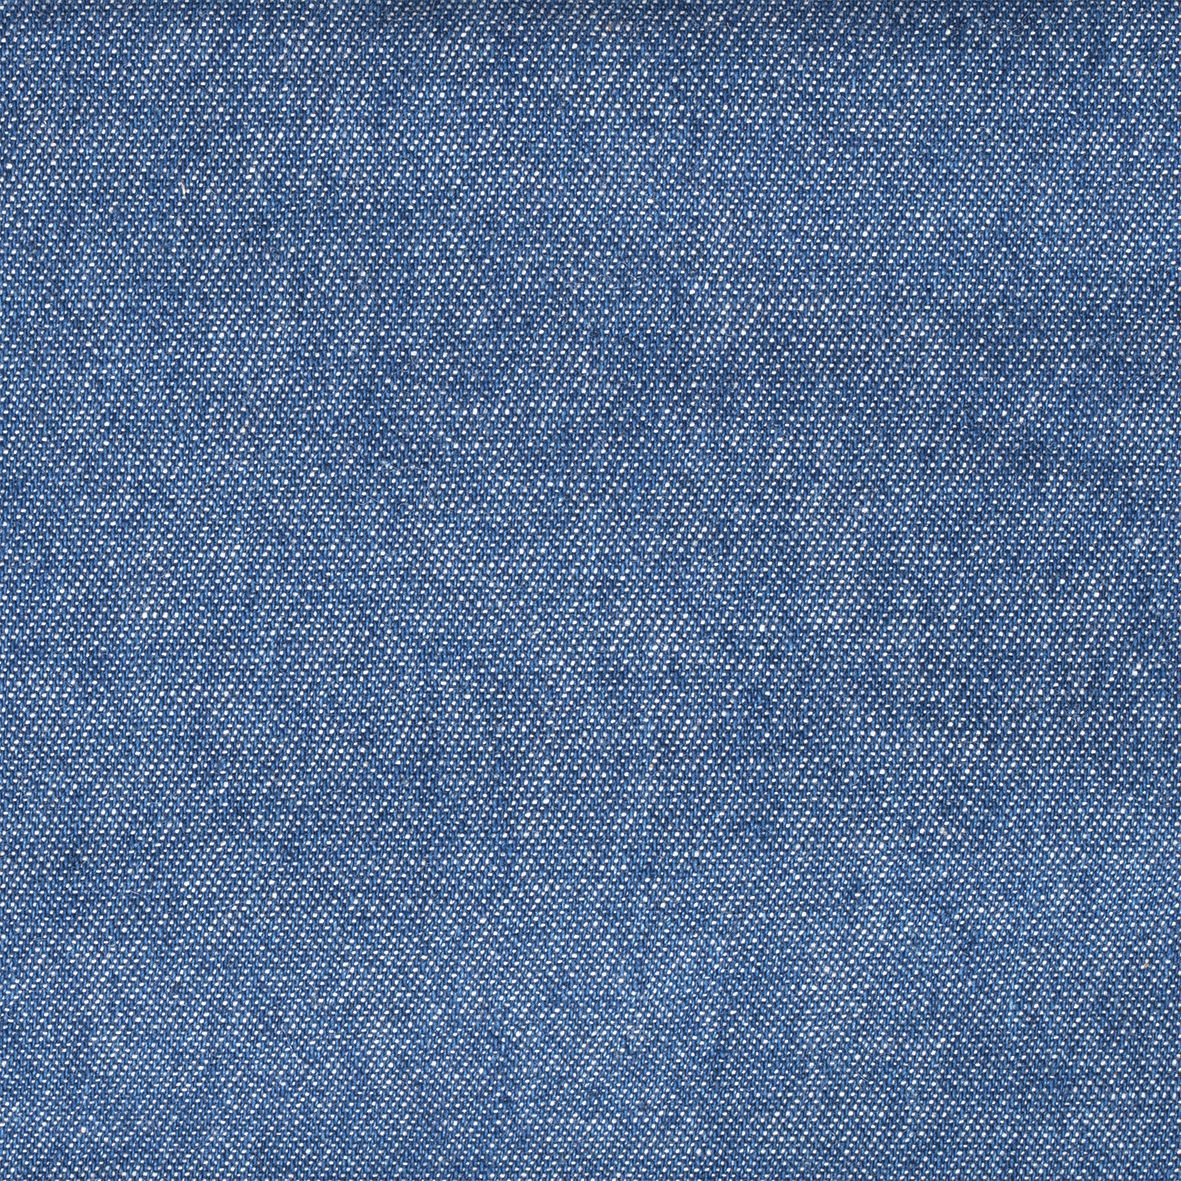 Denim gestreift